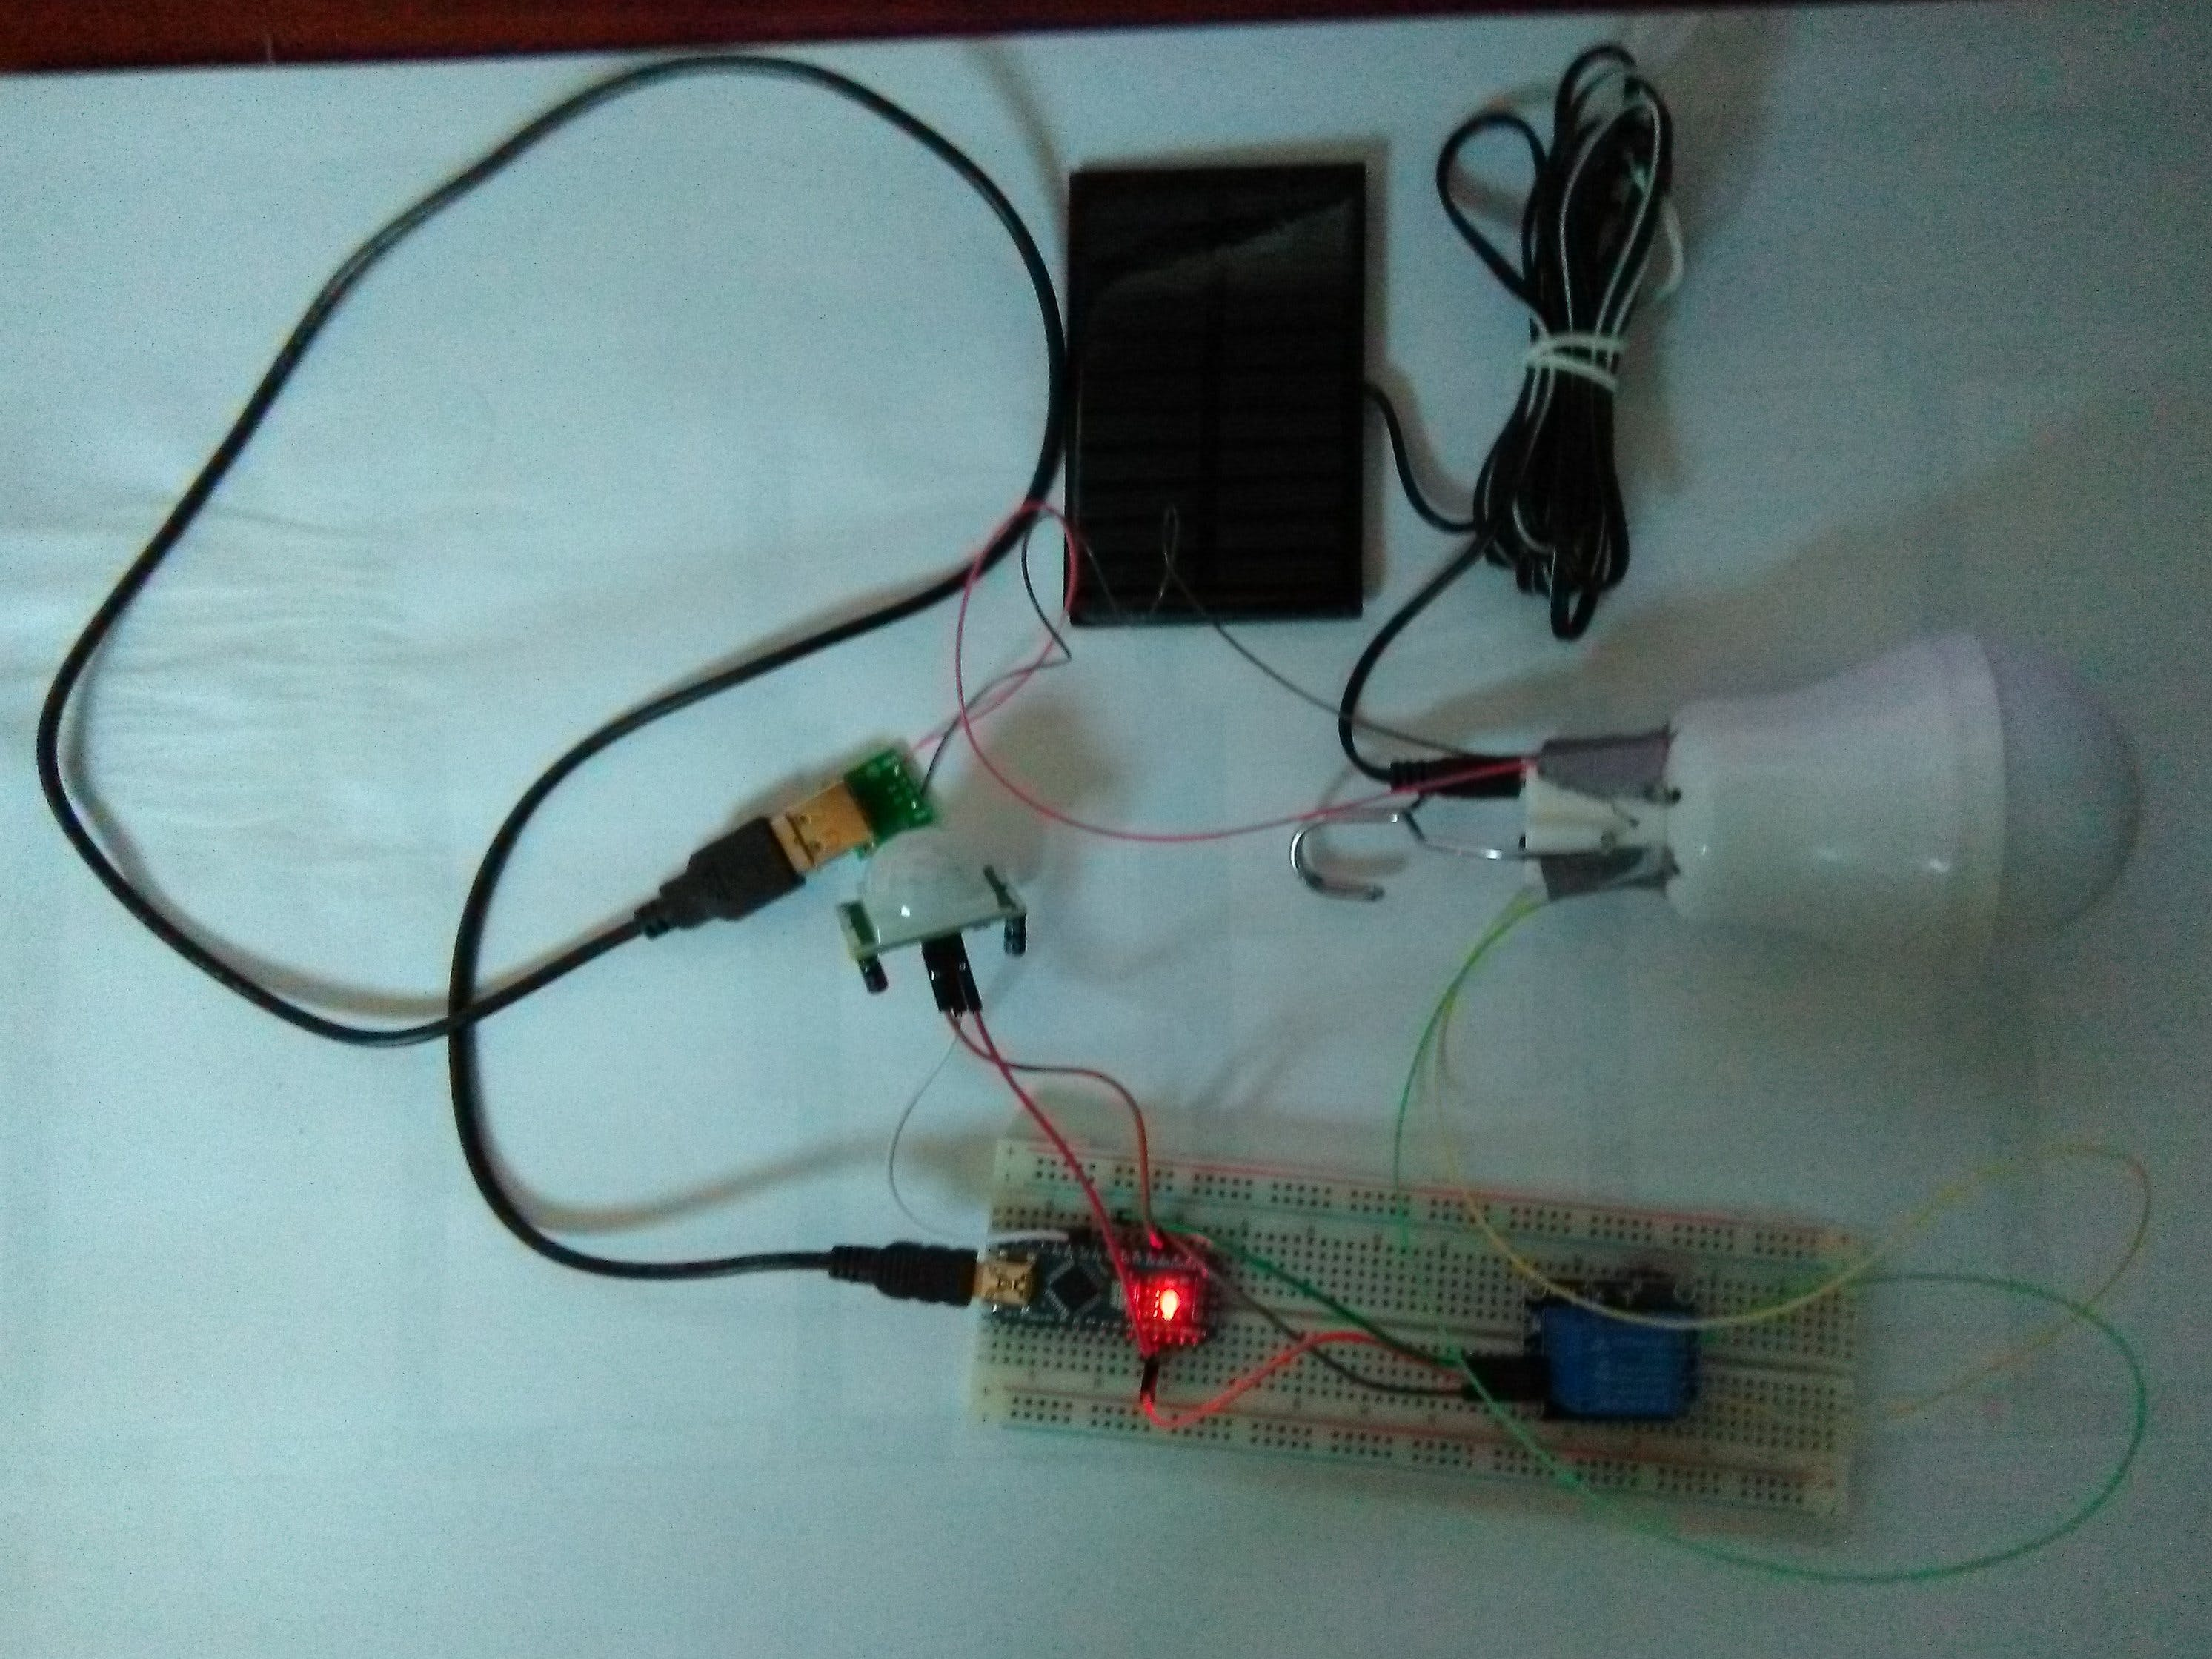 The Solar Lamp Works as Needed